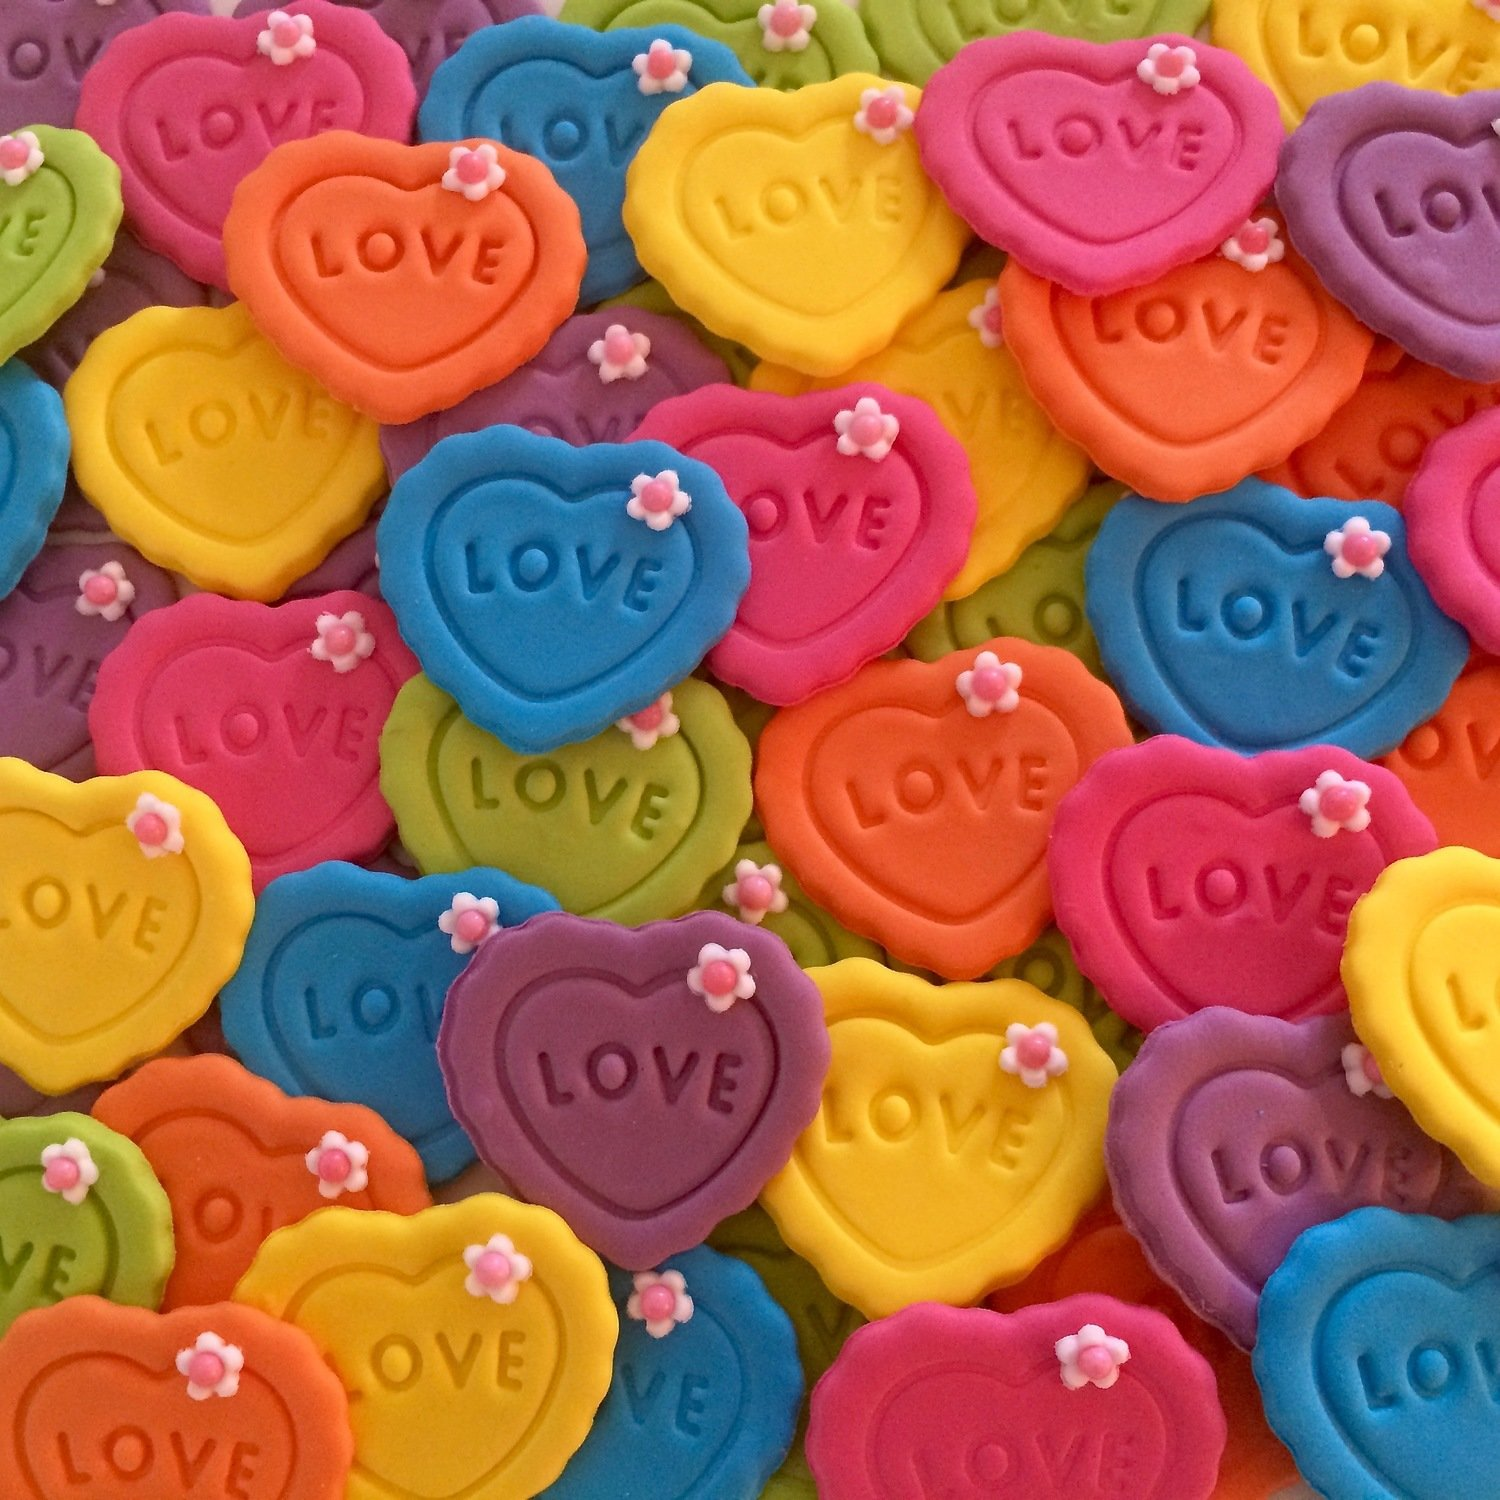 Large Love Hearts